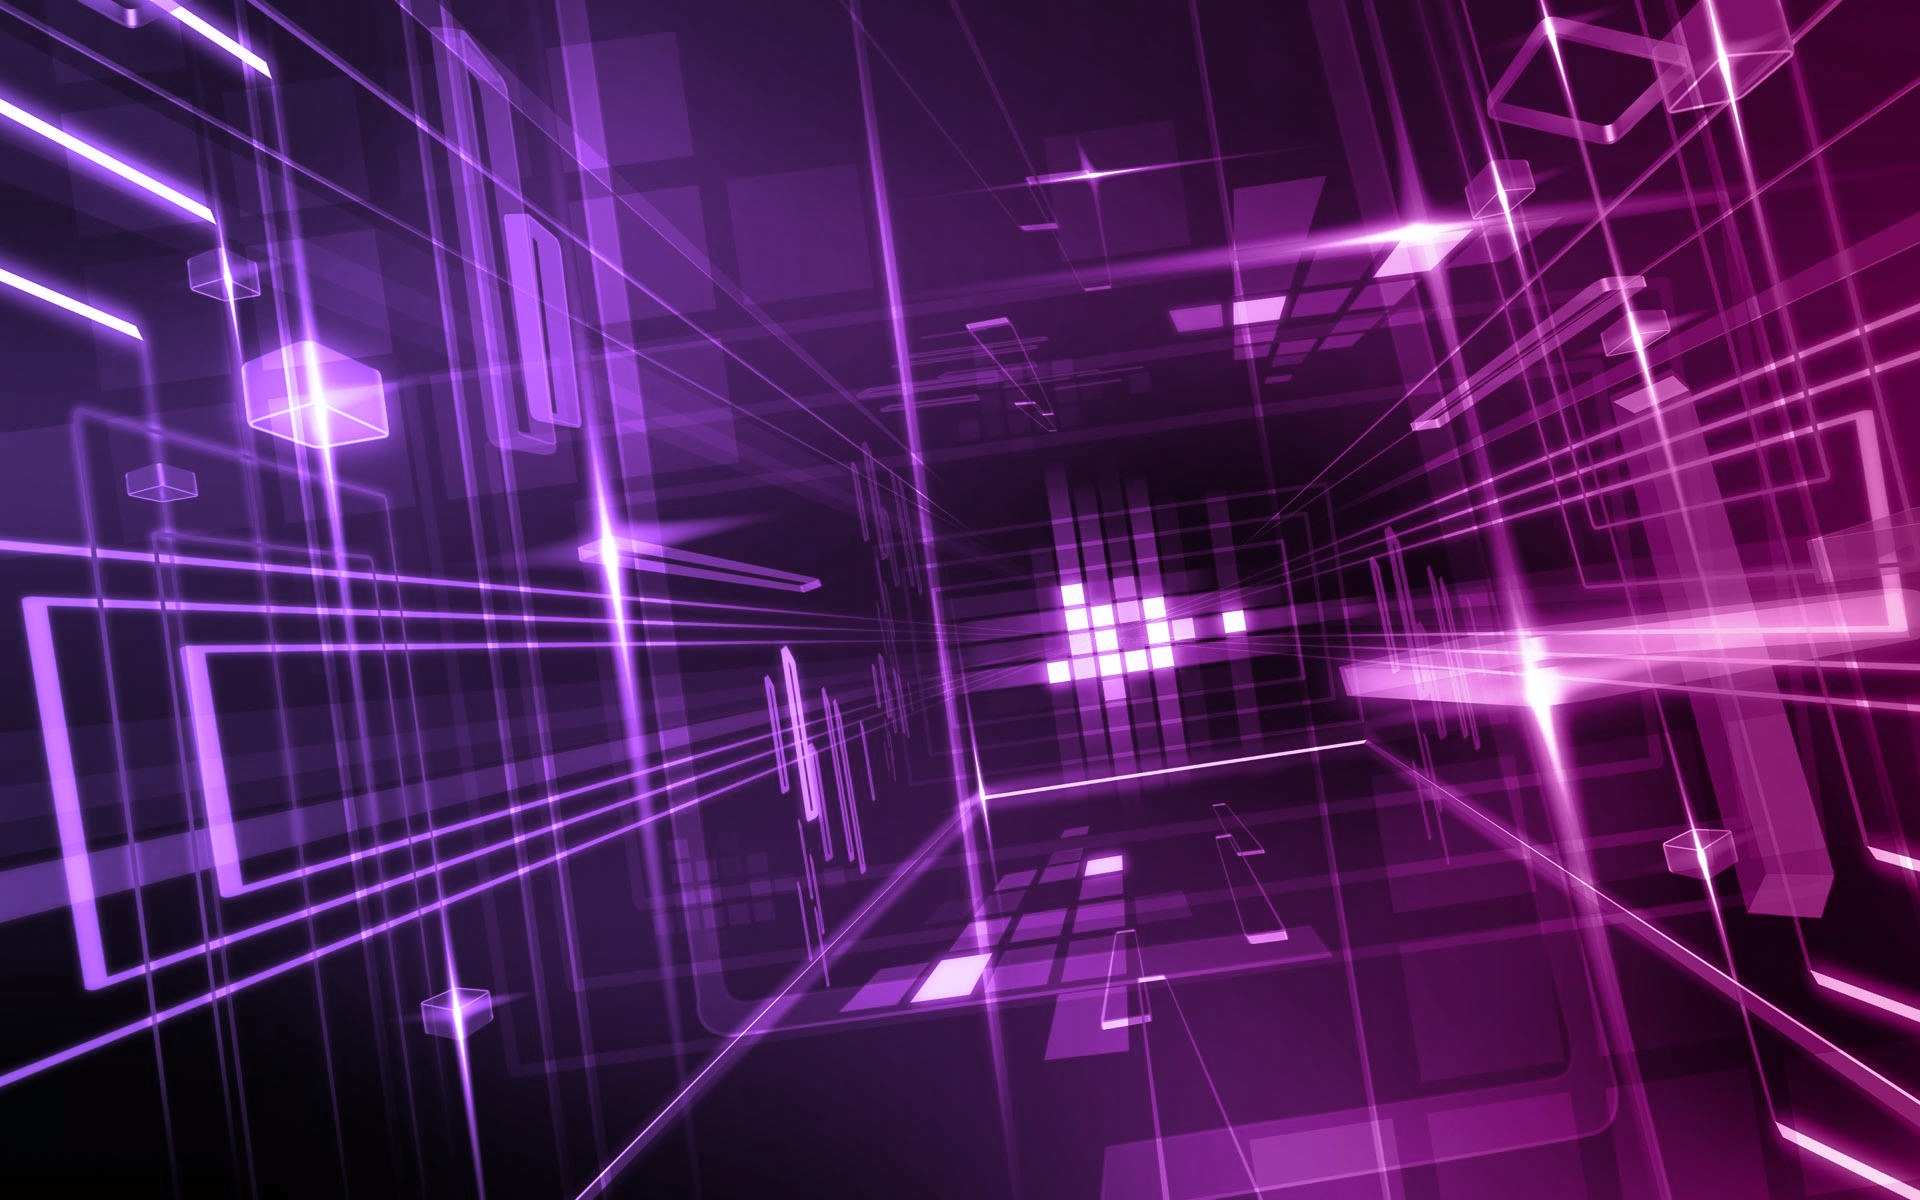 39 high definition purple wallpaper images for free download for 3d brown wallpaper